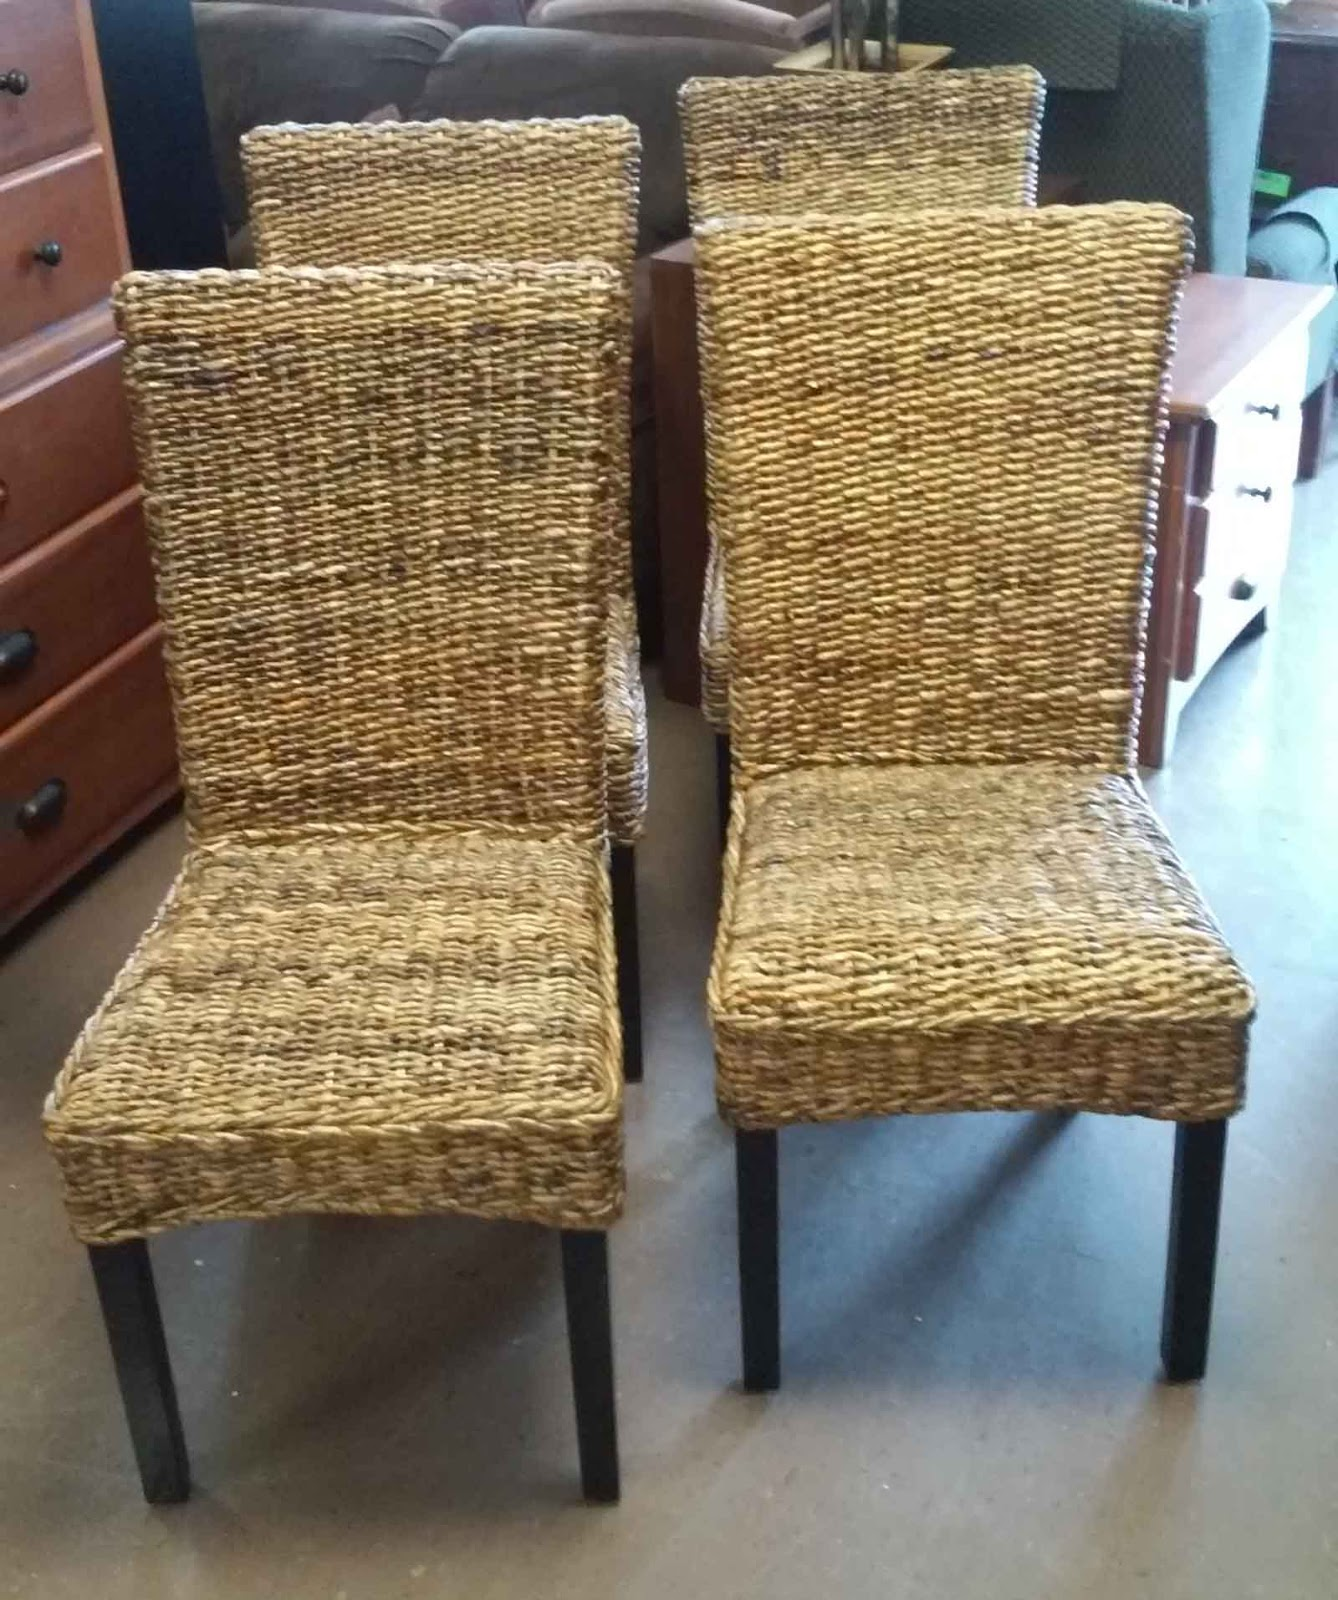 Sold classic concepts jute dining chairs 125 set of 4